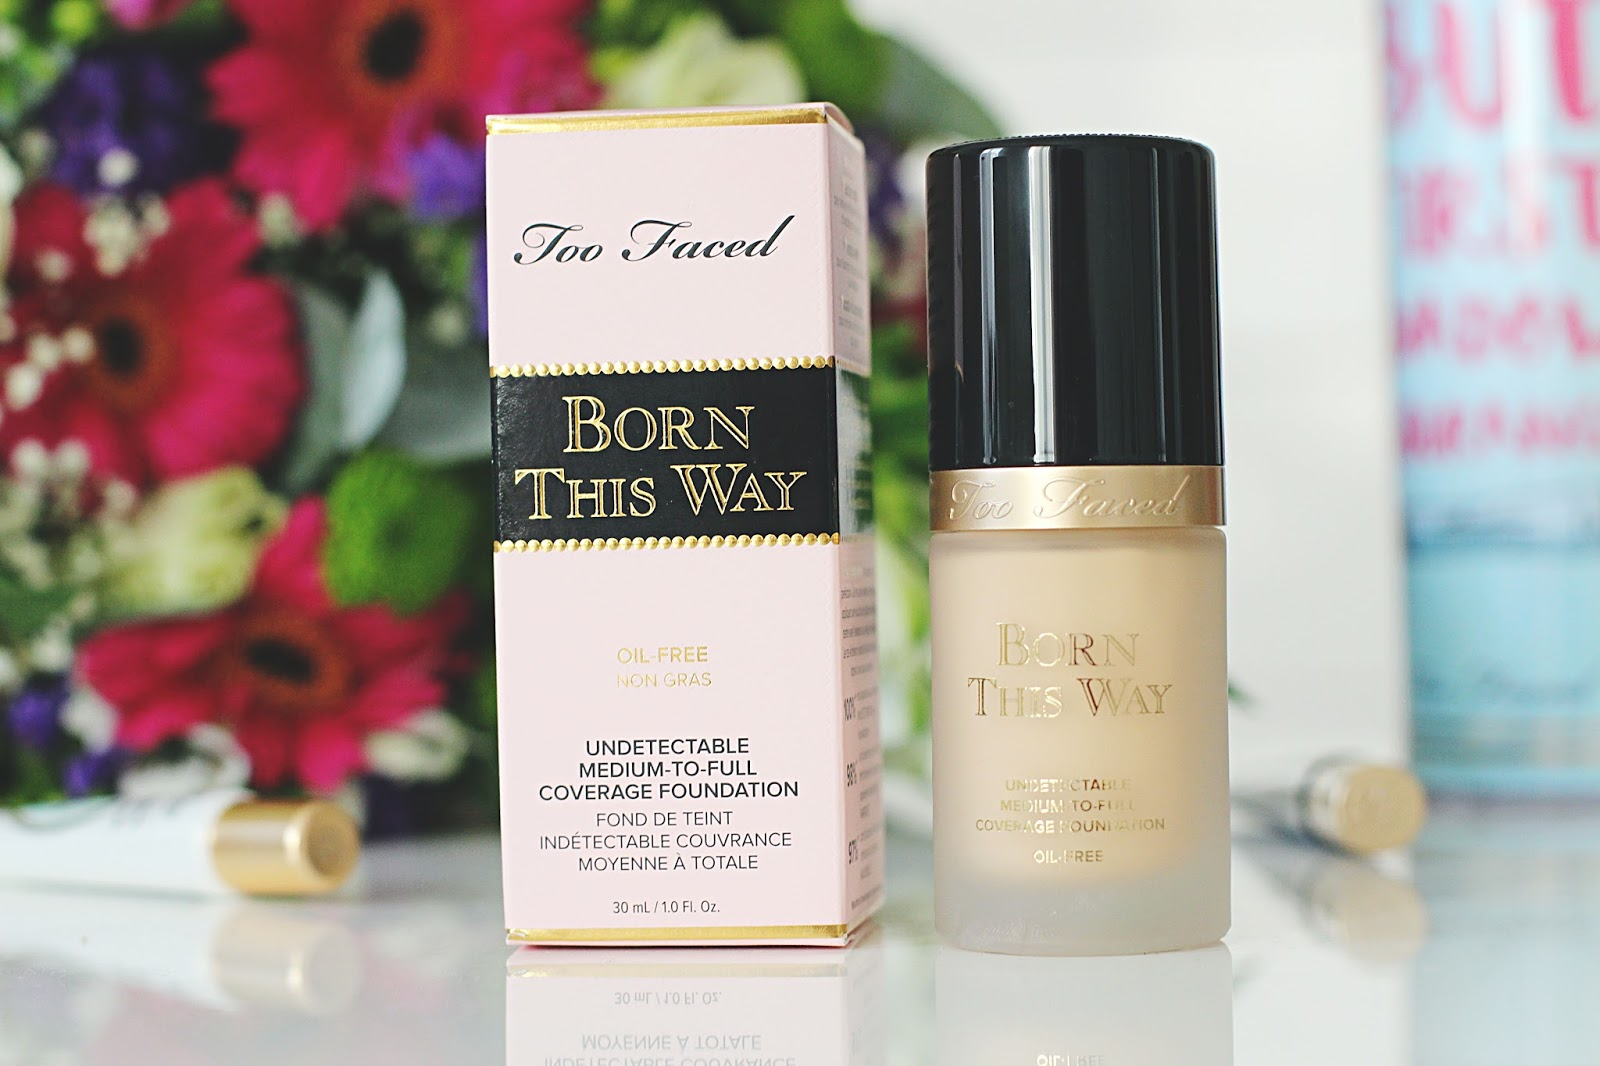 born this way fond de teint too faced